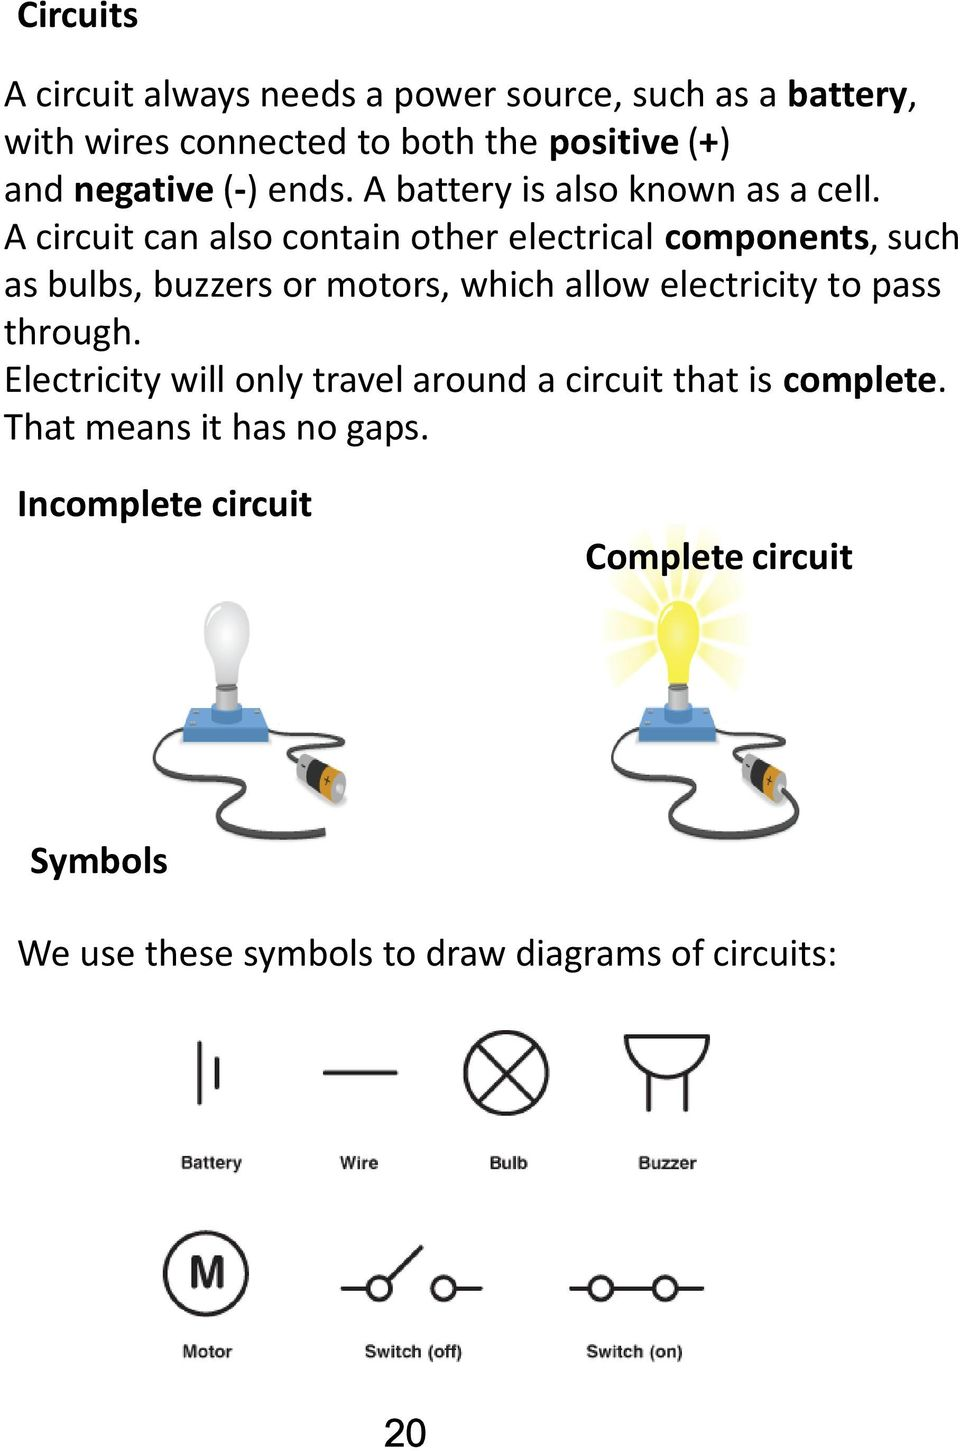 Electricity Unit Science And Technolgy Cycle 3 Name Group Teacher Wiring Diagram Quiz Together With Game Show Buzzer Circuit A Can Also Contain Other Electrical Components Such As Bulbs Buzzers Or Motors